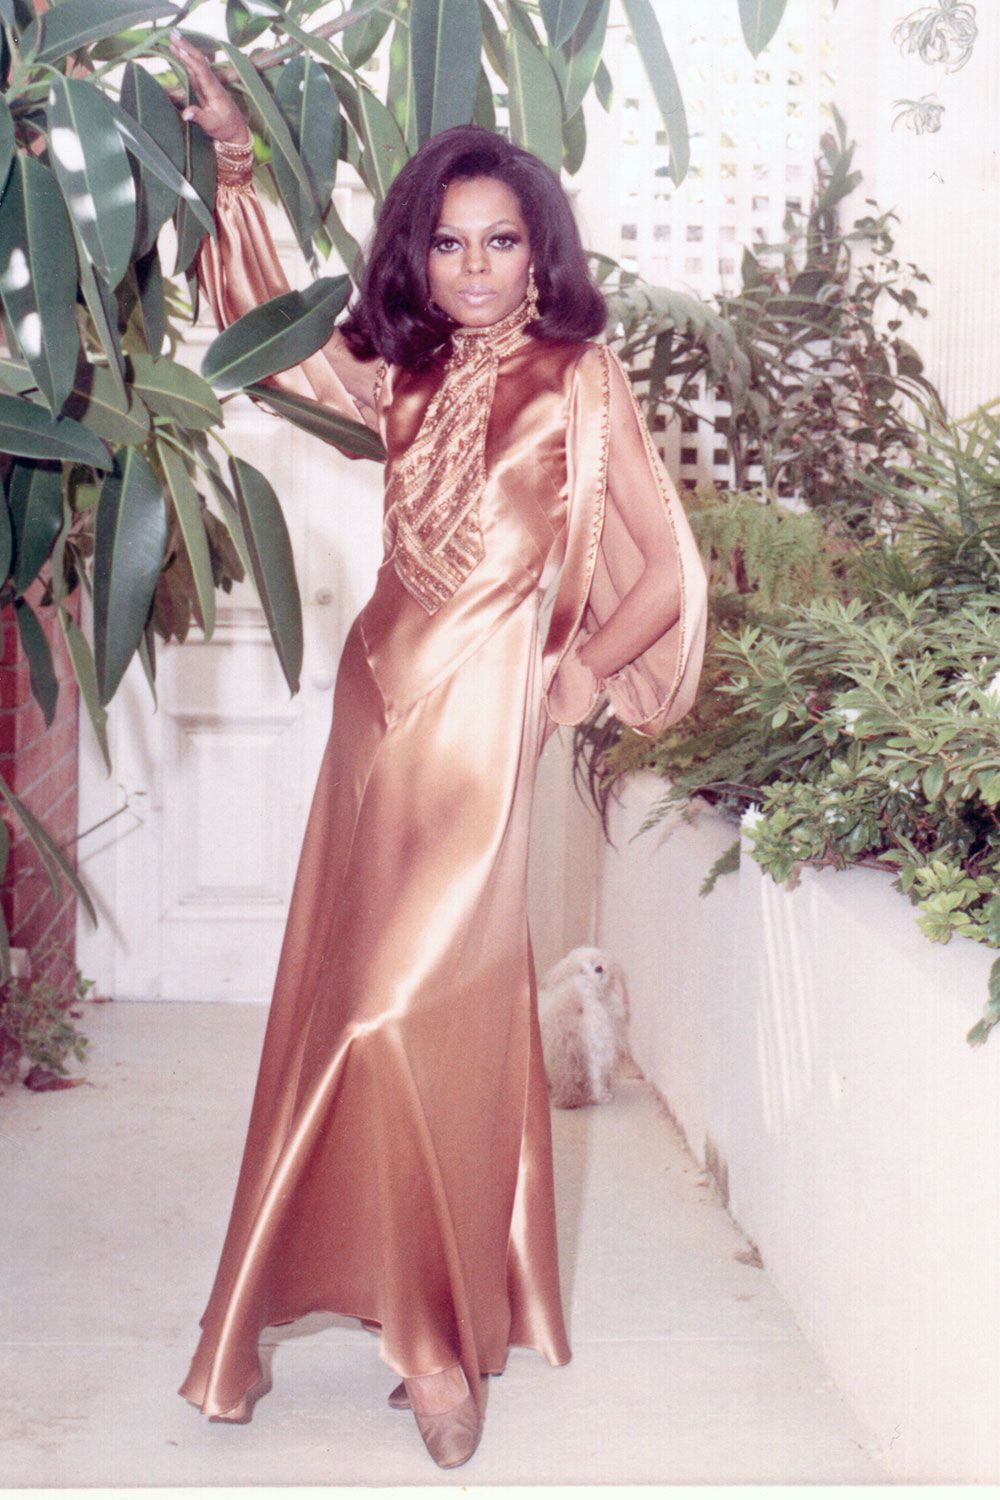 66e9d5724034 Vintage 70s fashion inspiration from Harpers Bazaar  DianaRoss   vintagefashion  70sfashion